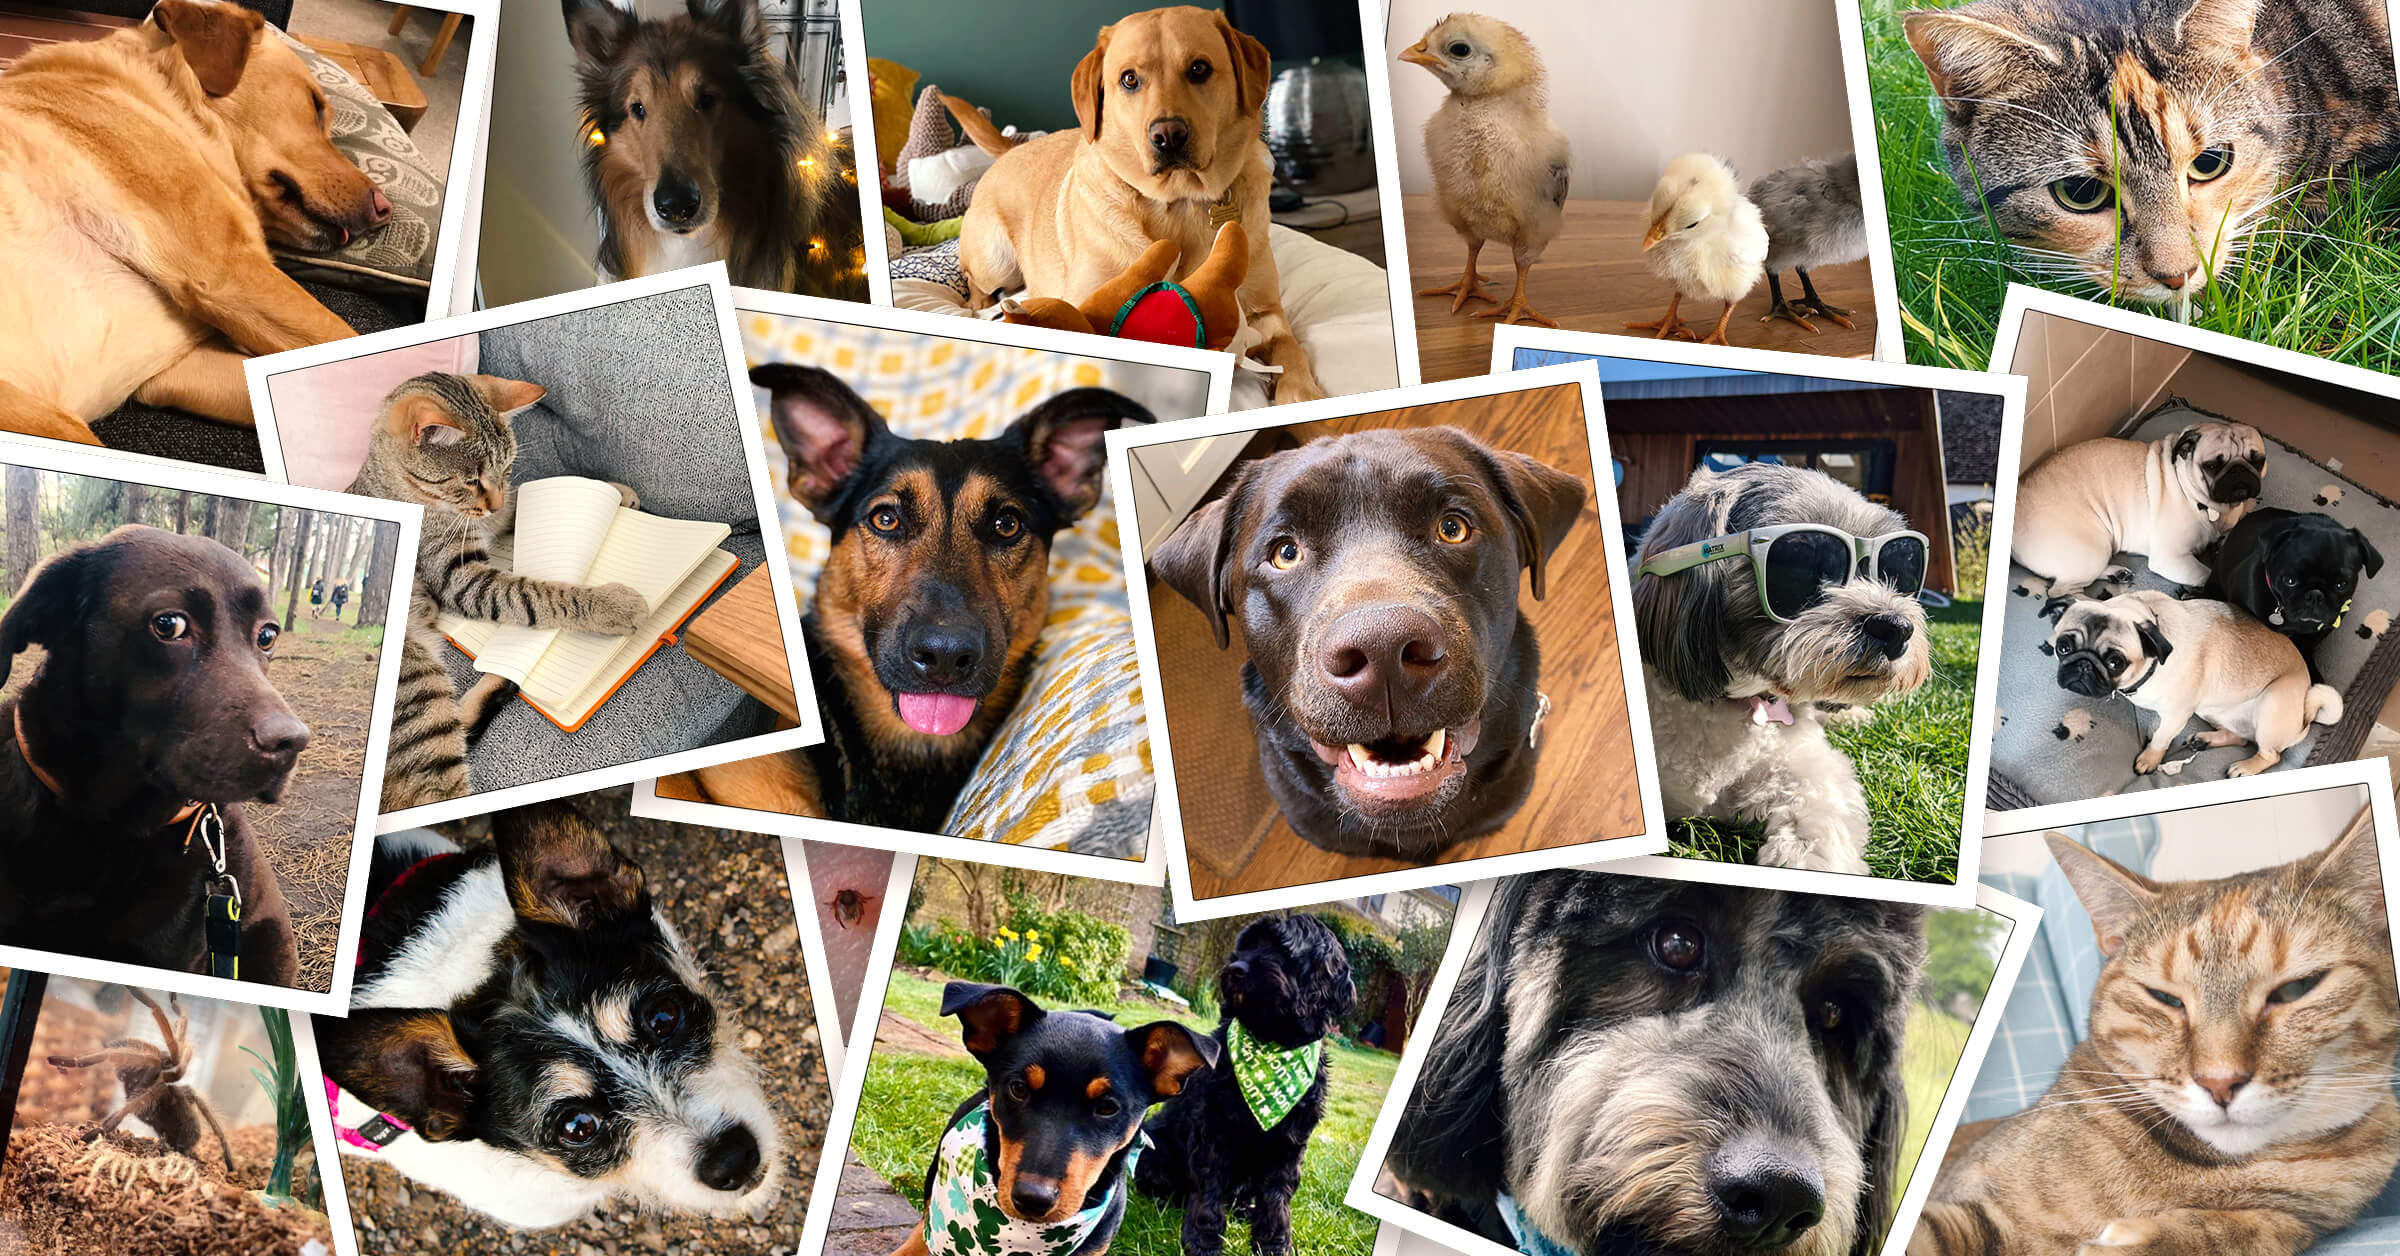 Collage of animals from the #PetsofInfoSum slack channel